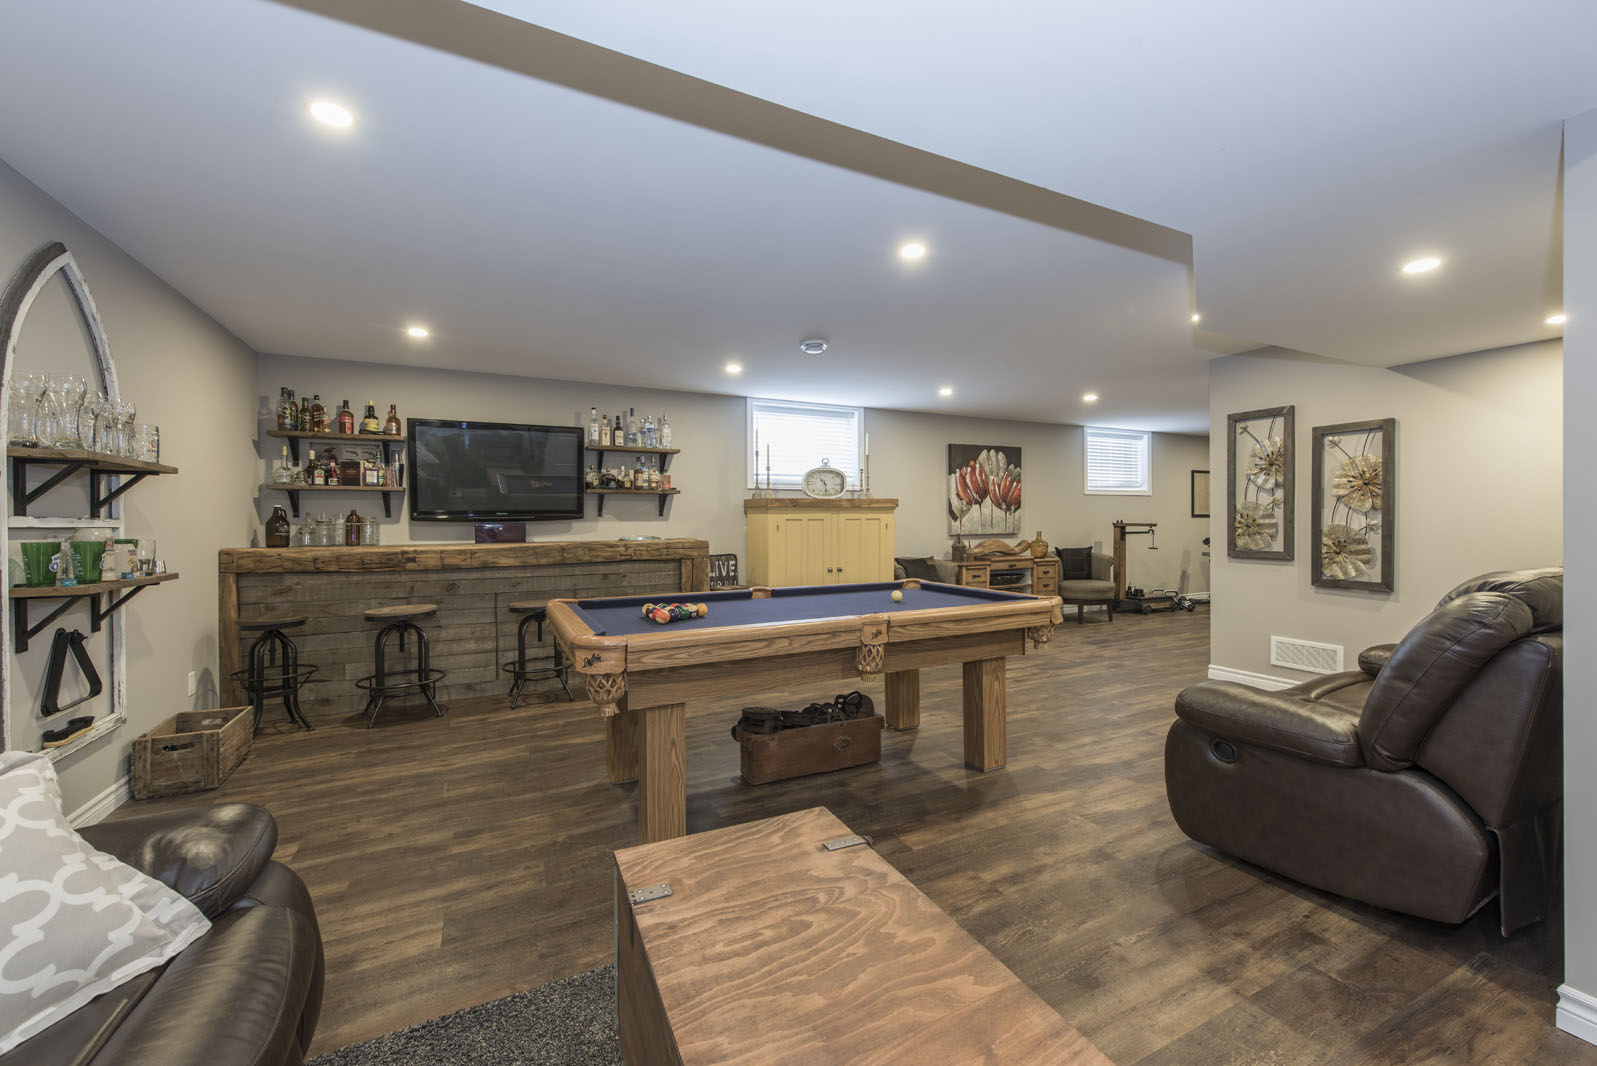 Basements - Do you have an out-dated basement that could use some TLC? Or maybe you have an unfinished basement that is an empty canvas awaiting your unique design. We can create a beautiful basement custom-tailored to your needs, which you can enjoy spending time in with your friends and family for decades!